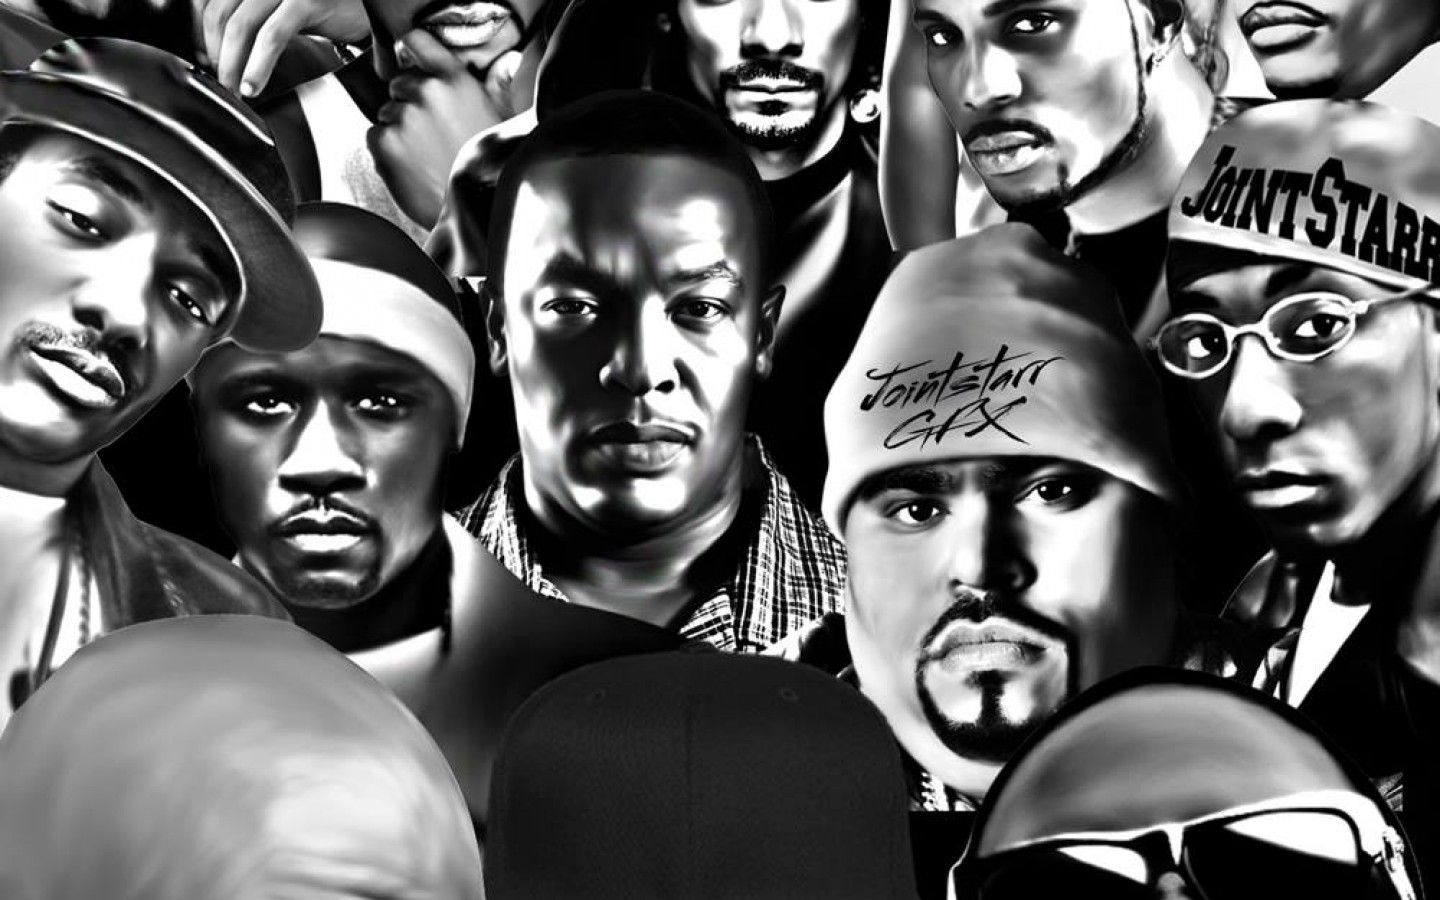 1440x900 Images of East Coast Rappers Collage - #SpaceHero